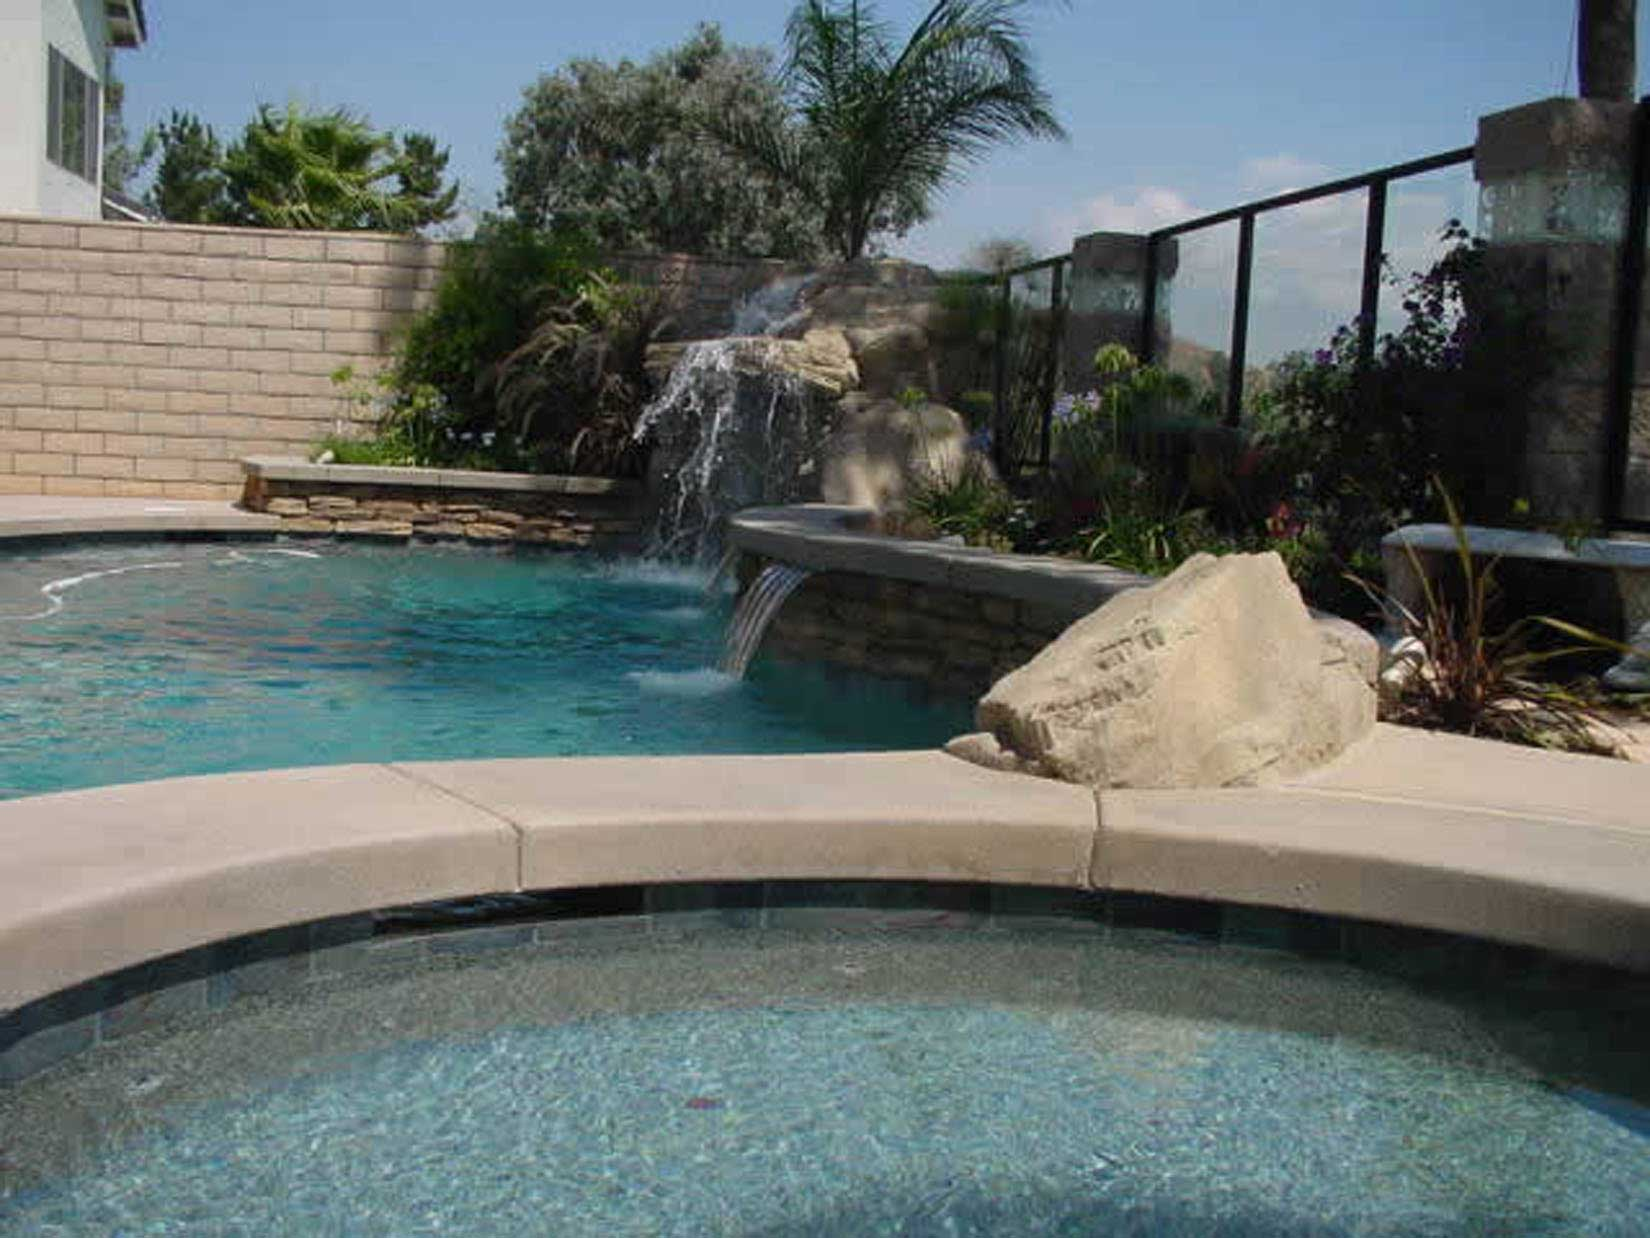 How to build your own pools spas hot tubs how to build for Build your own pool